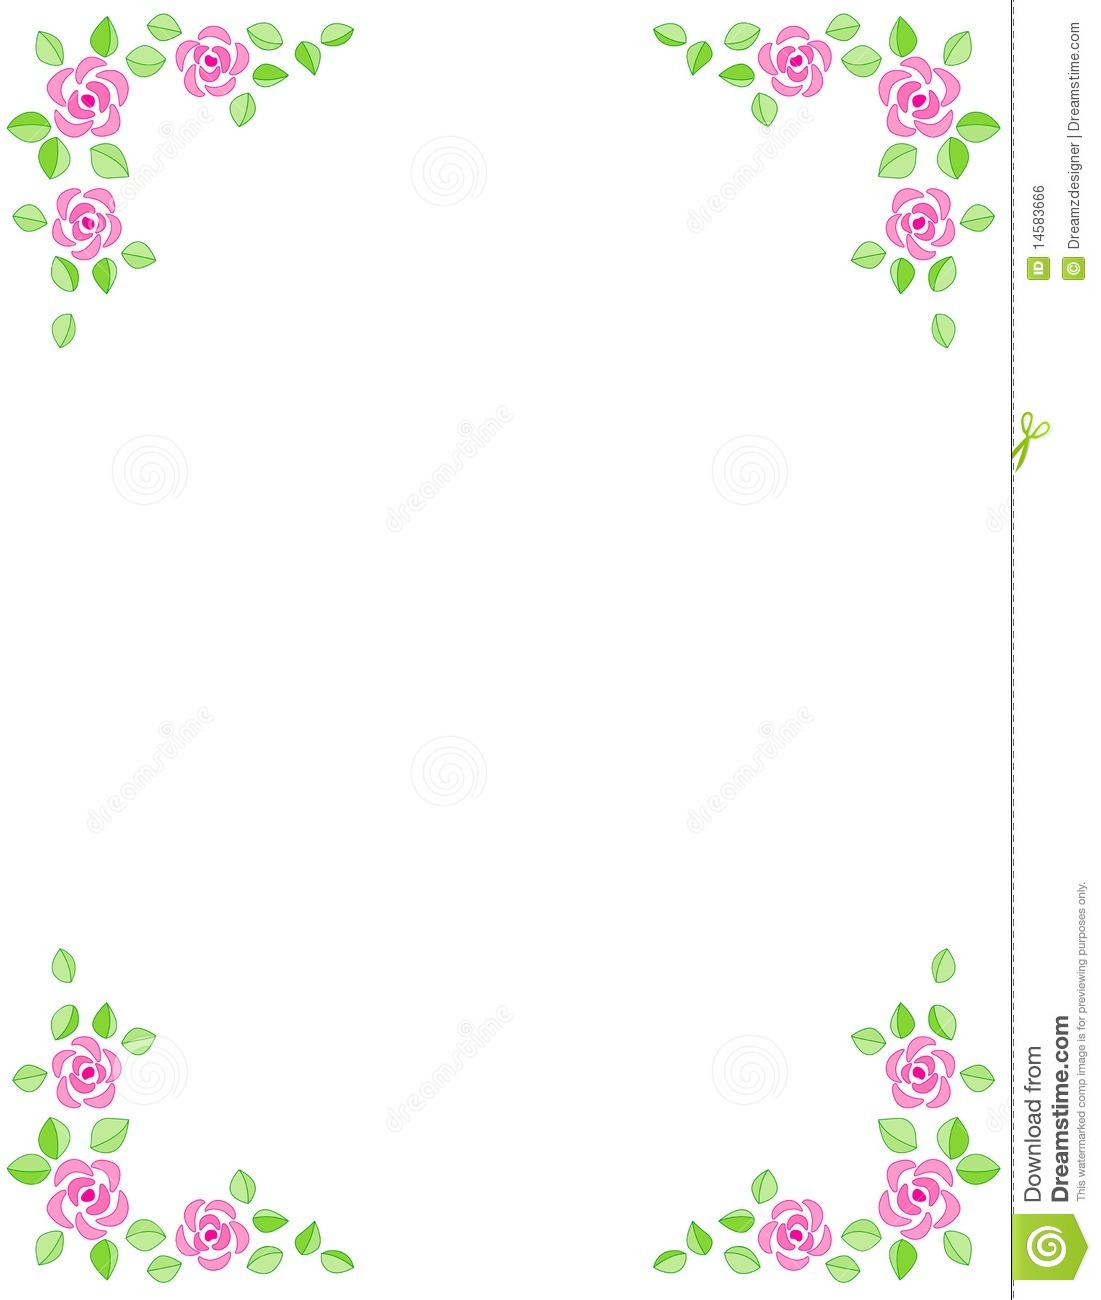 Pics Photos - Wedding Clipart Borders Free Wallpaper